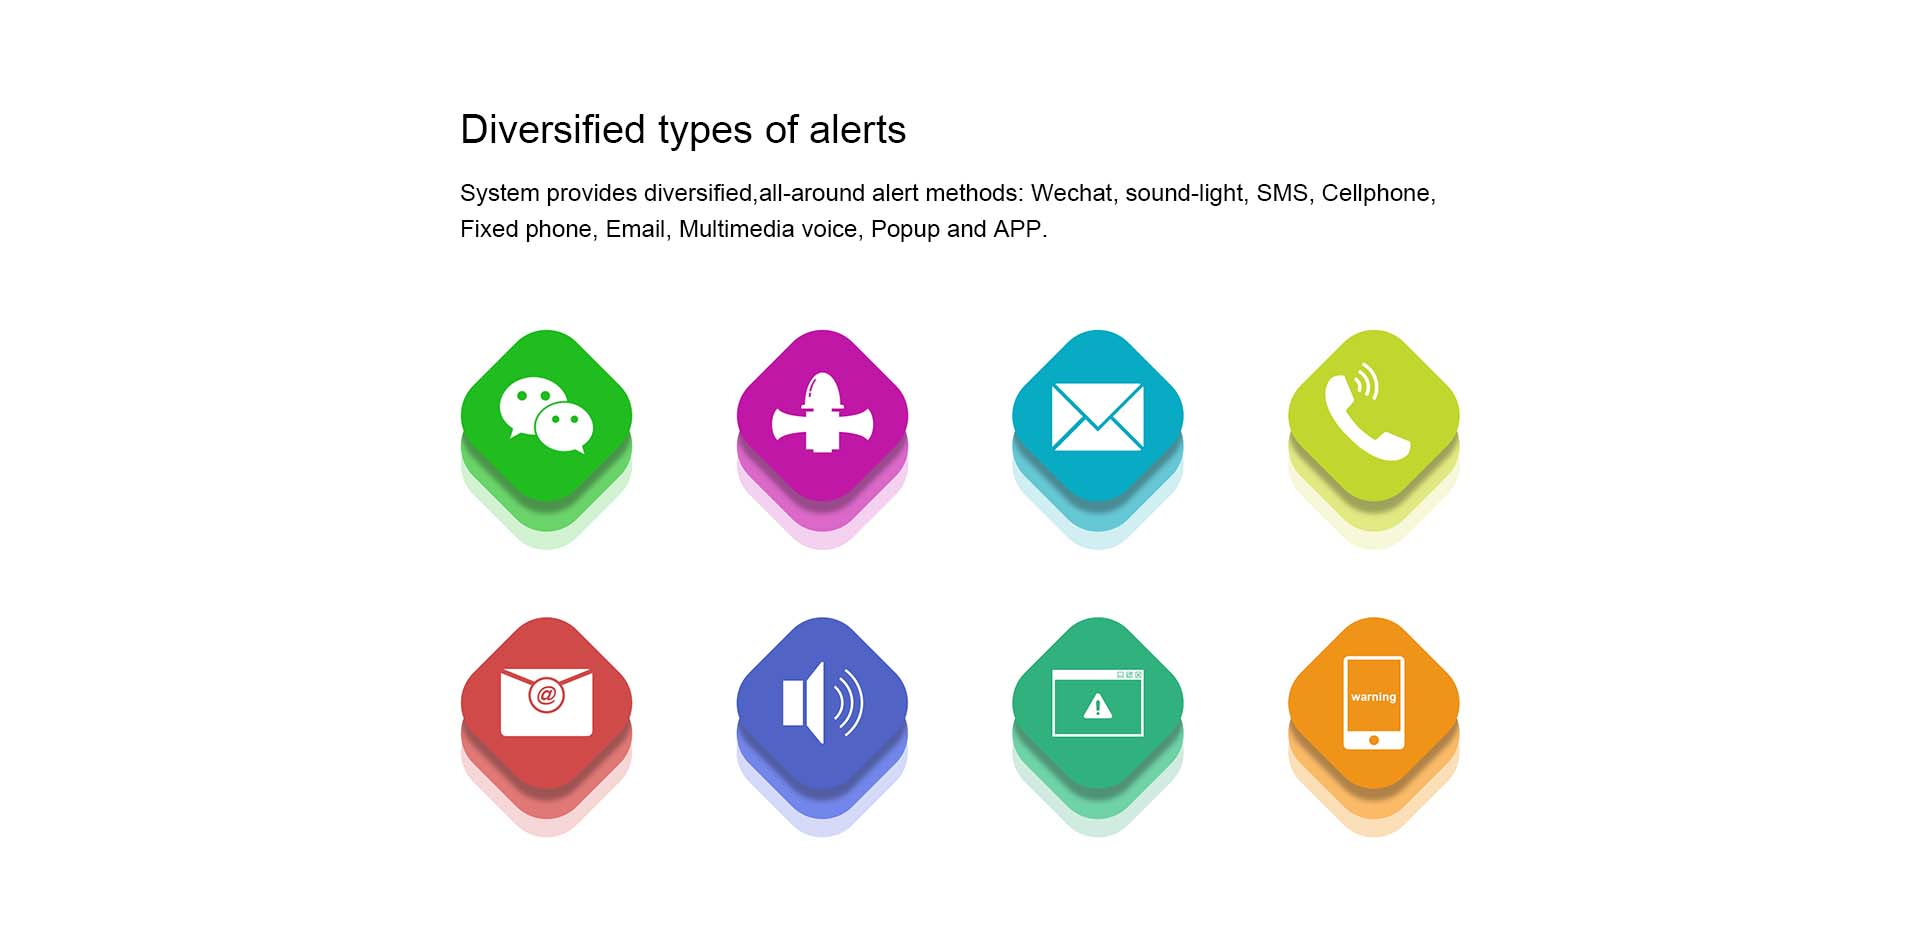 Diversified types of alerts